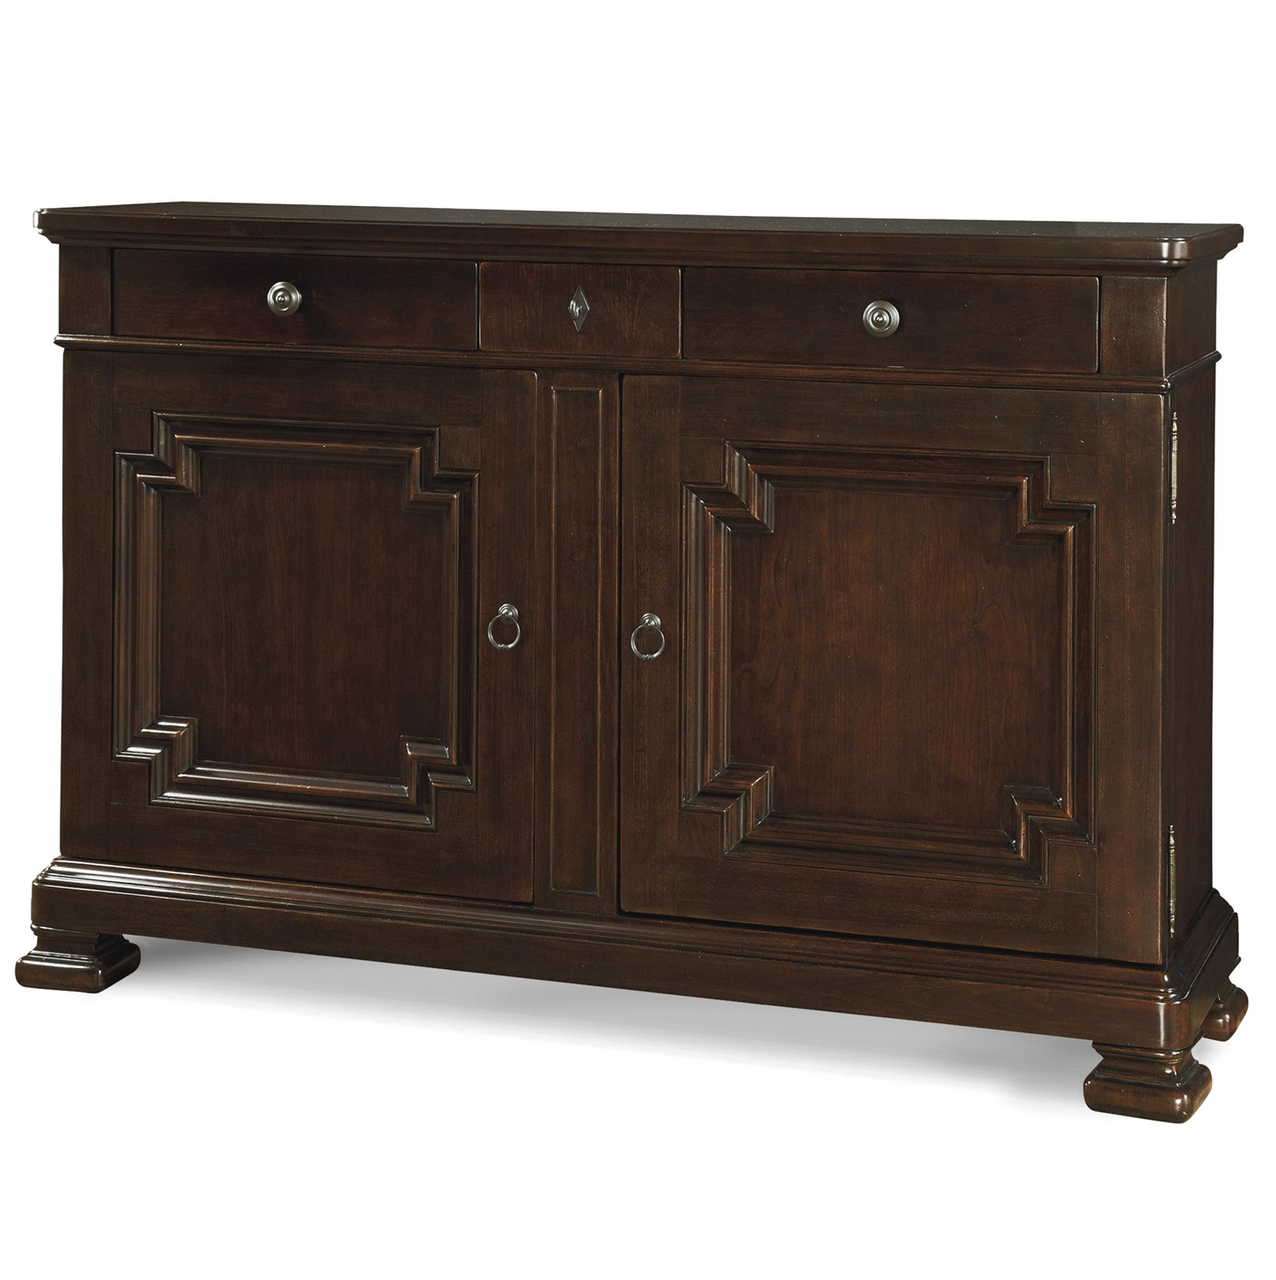 Proximity Cherry Wood Dining Room Credenza Buffet